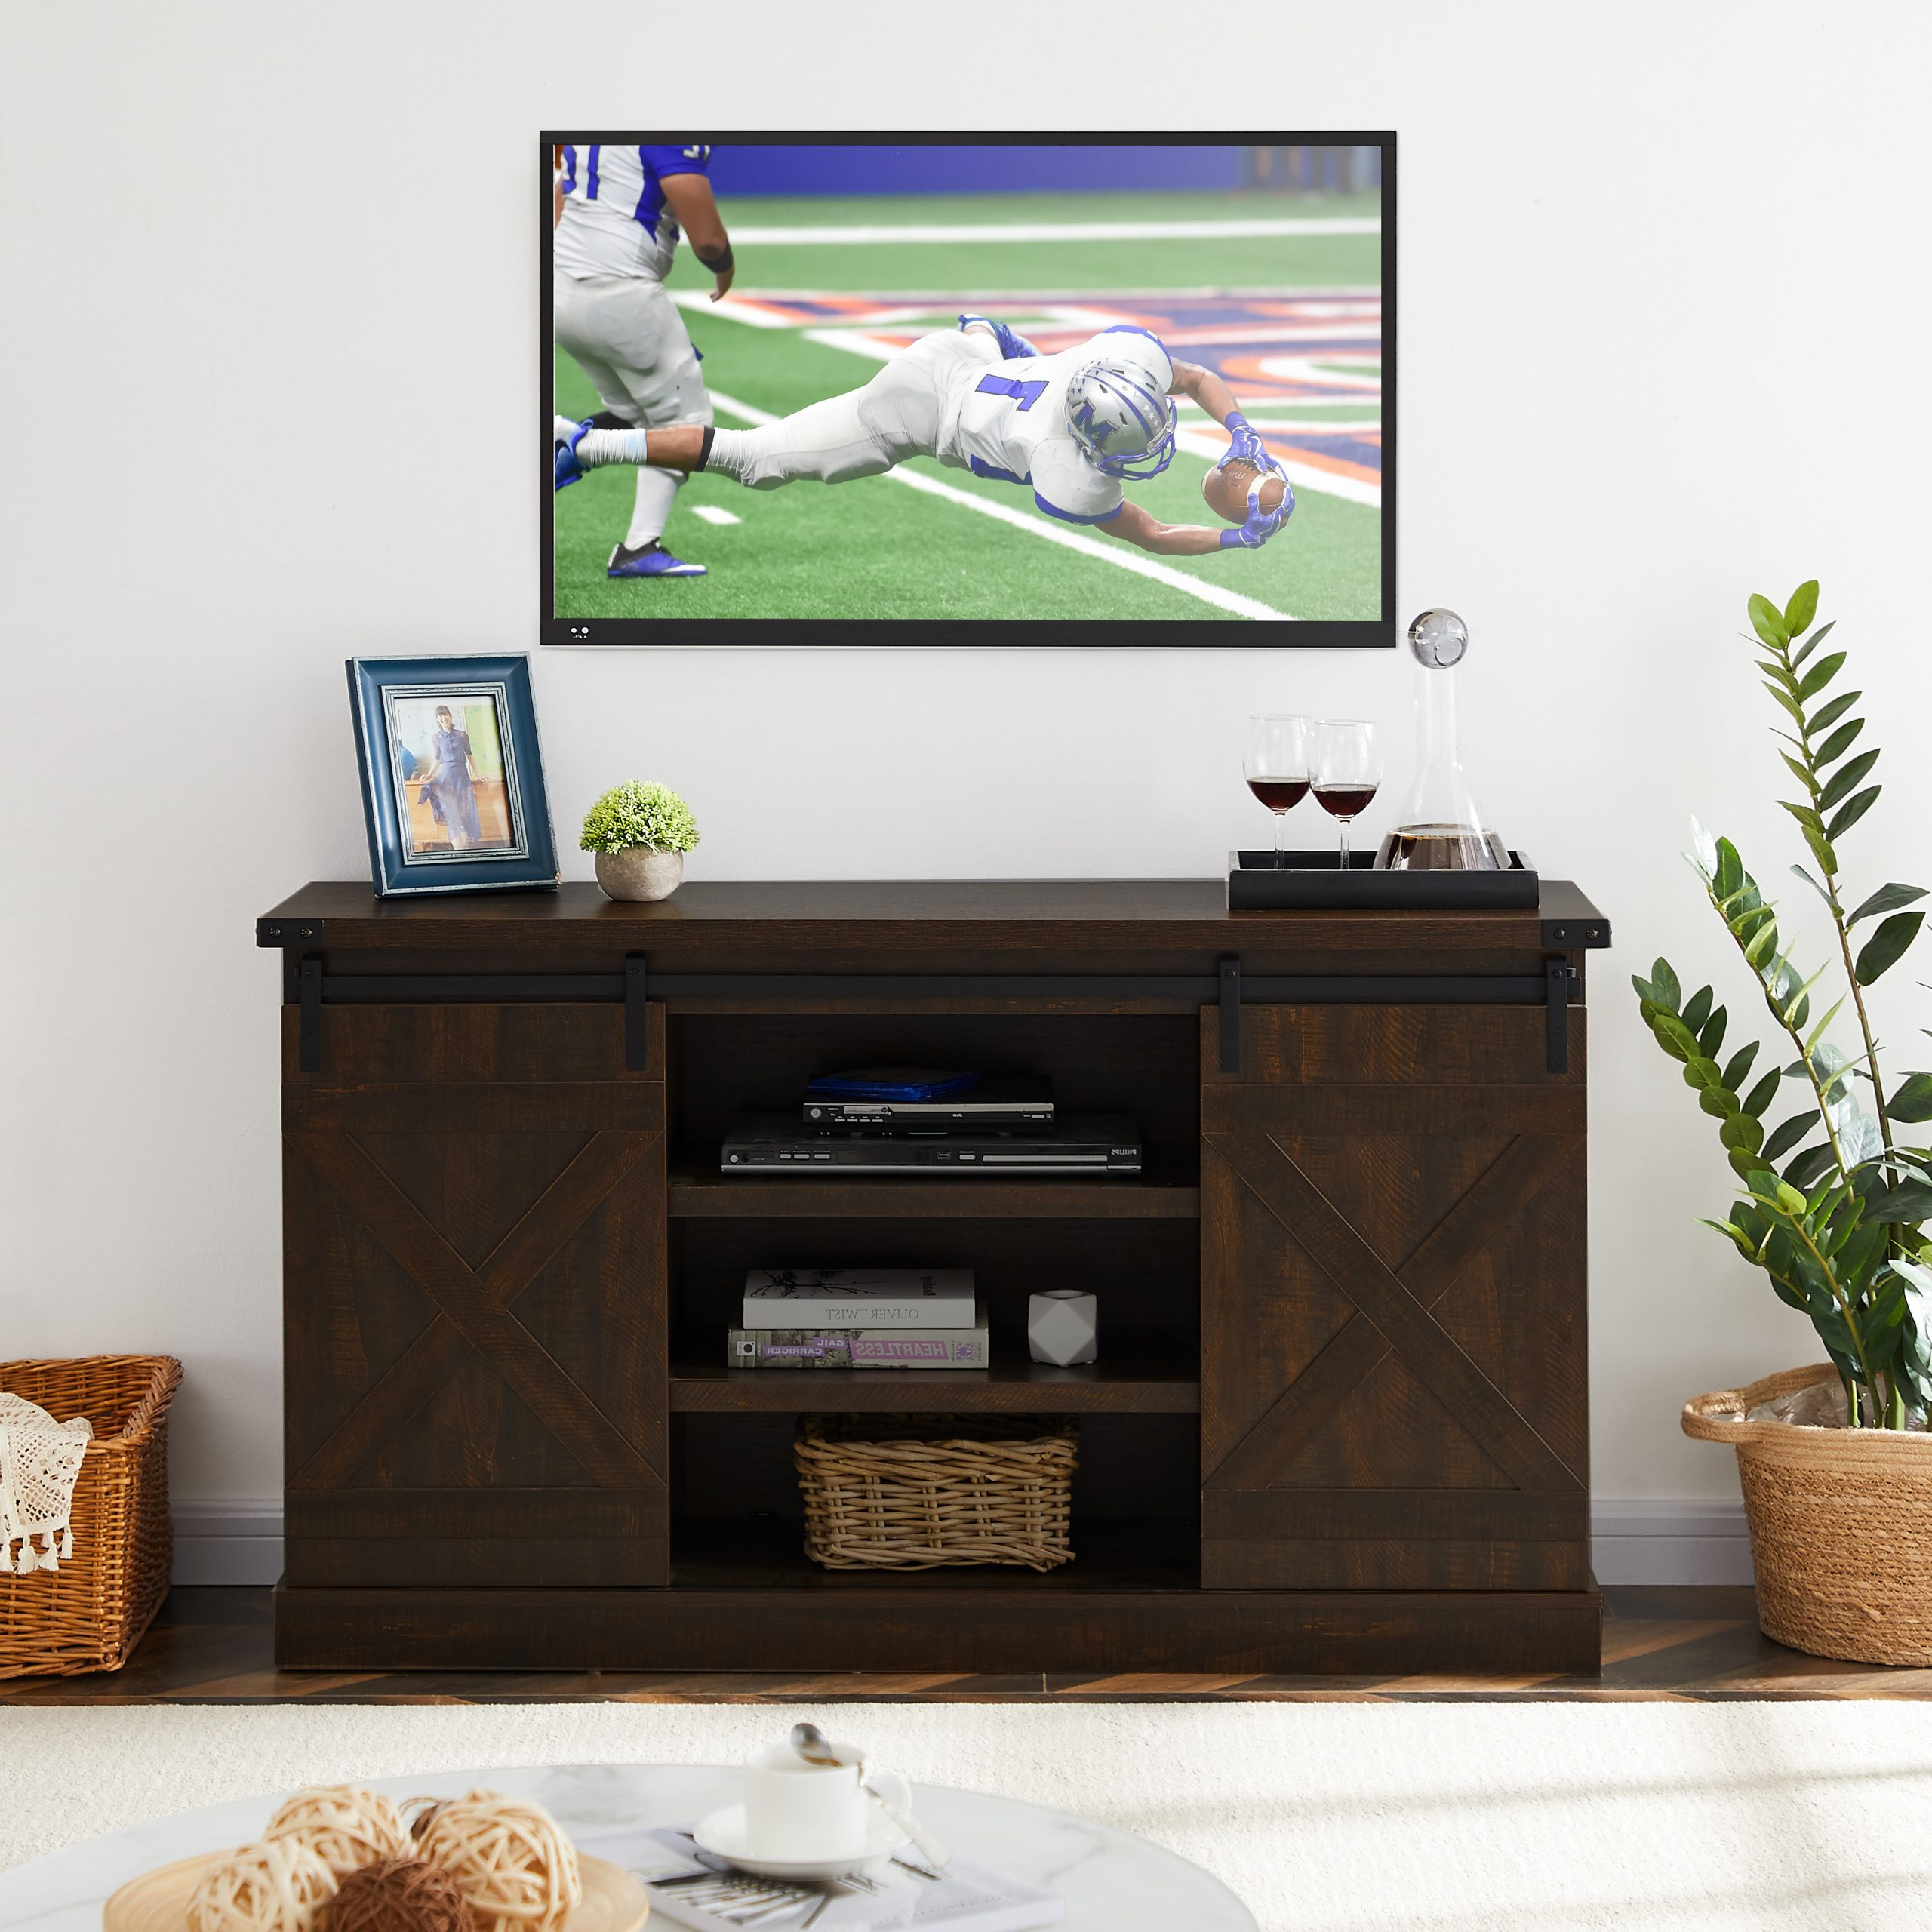 Tv Stand For 40 65 Inch Tv, Modern Farmhouse Tv Stand With Inside Modern 2 Glass Door Corner Tv Stands (View 2 of 20)